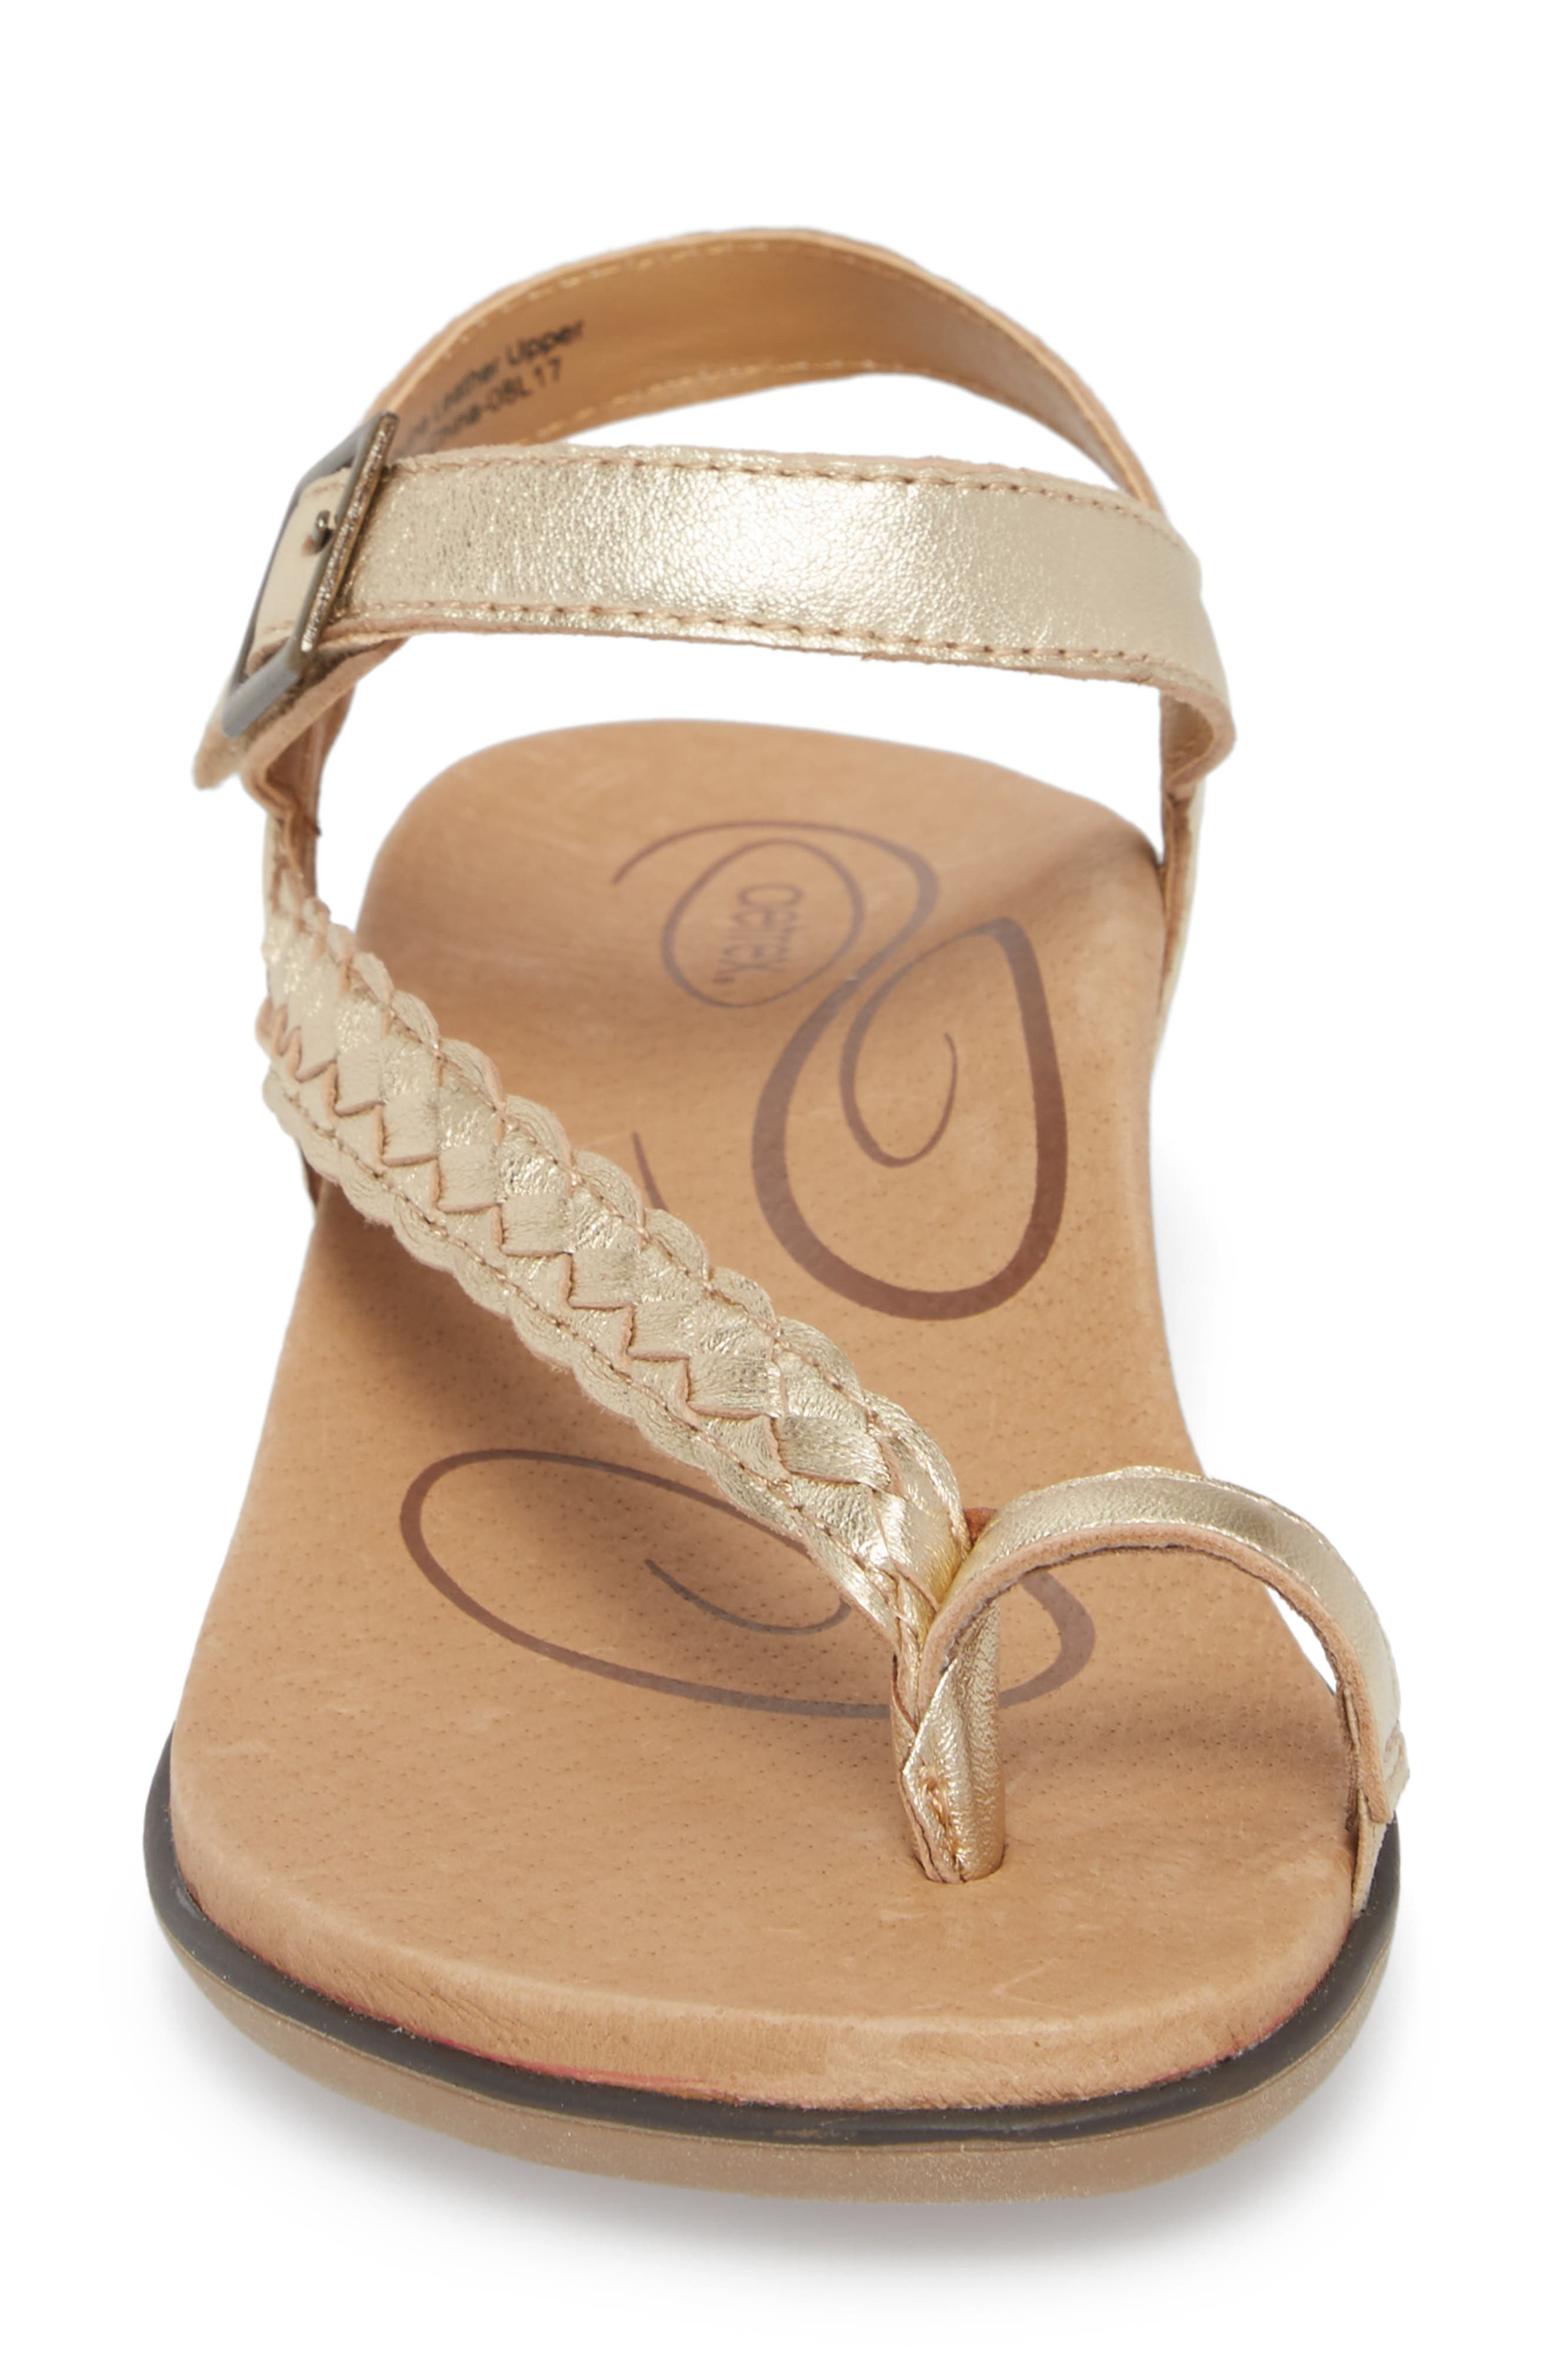 Evie Braided Strap Sandal,                             Alternate thumbnail 4, color,                             Gold Leather